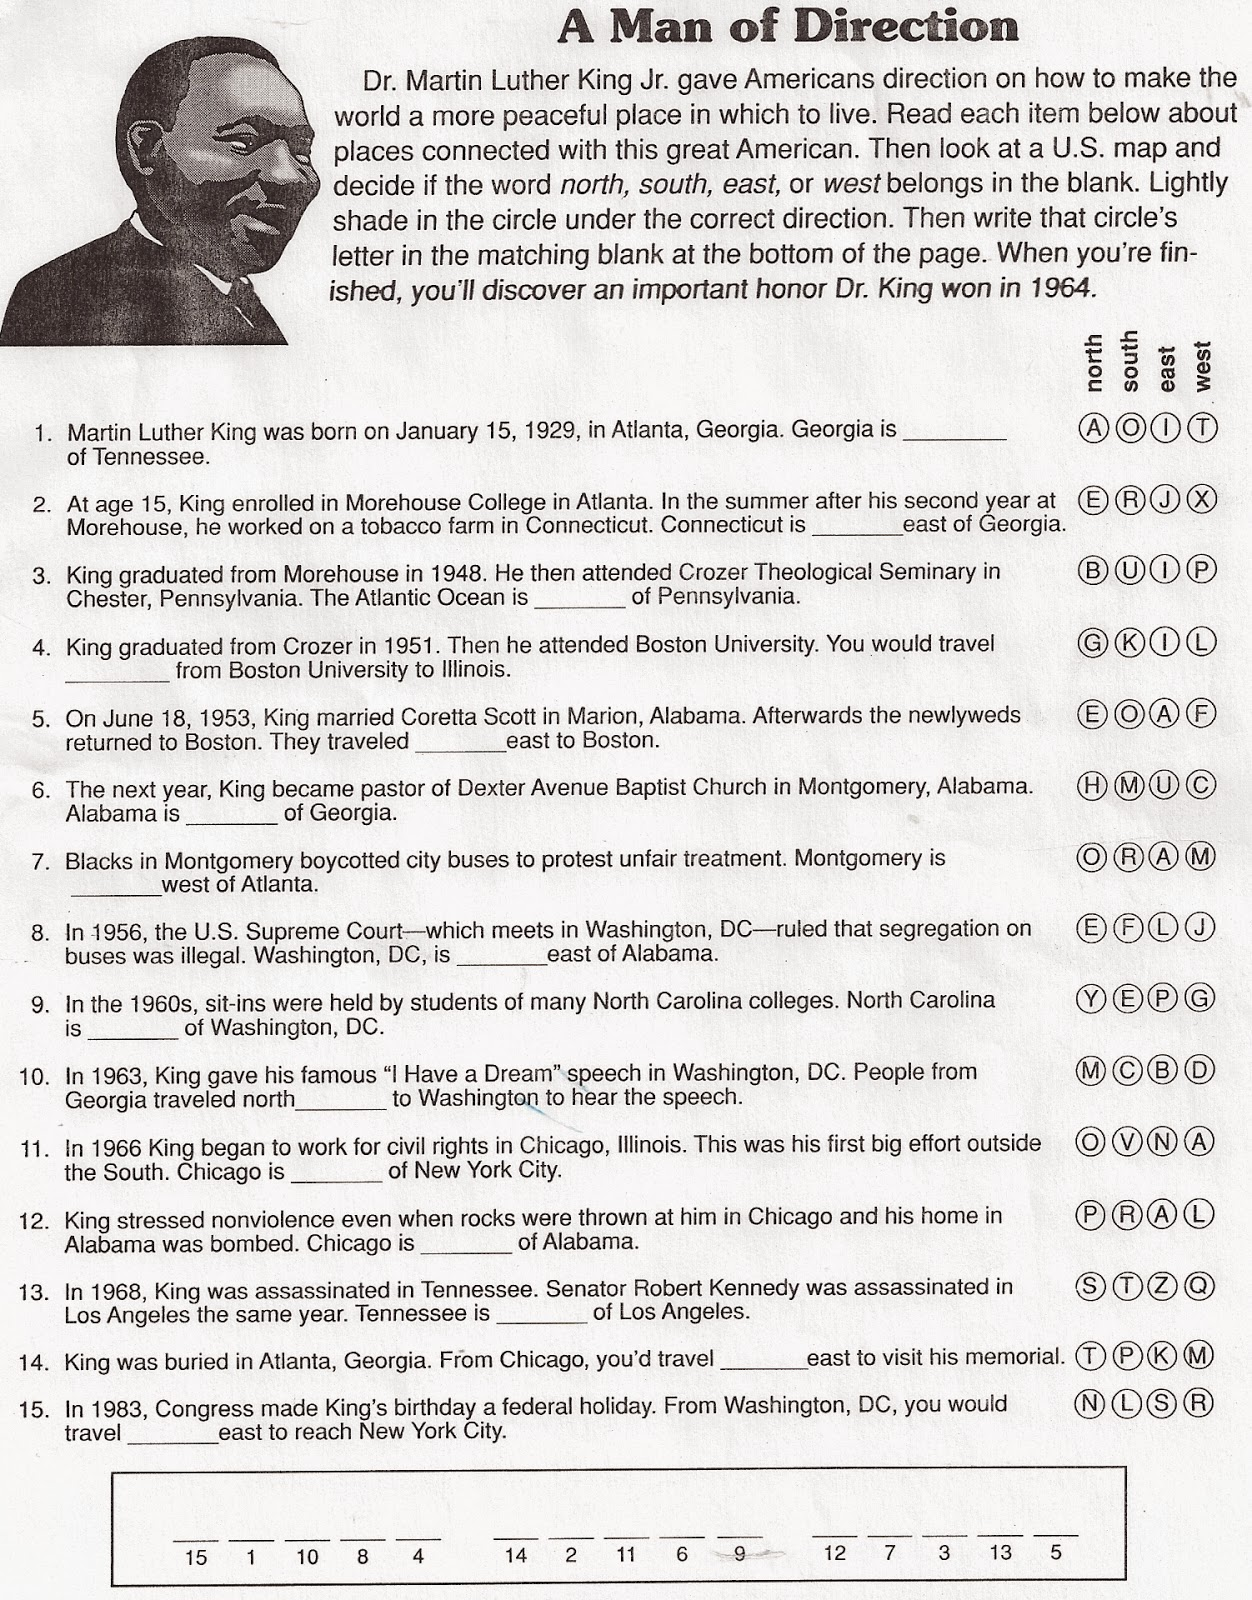 What are five issues mentioned in Martin Luther King's